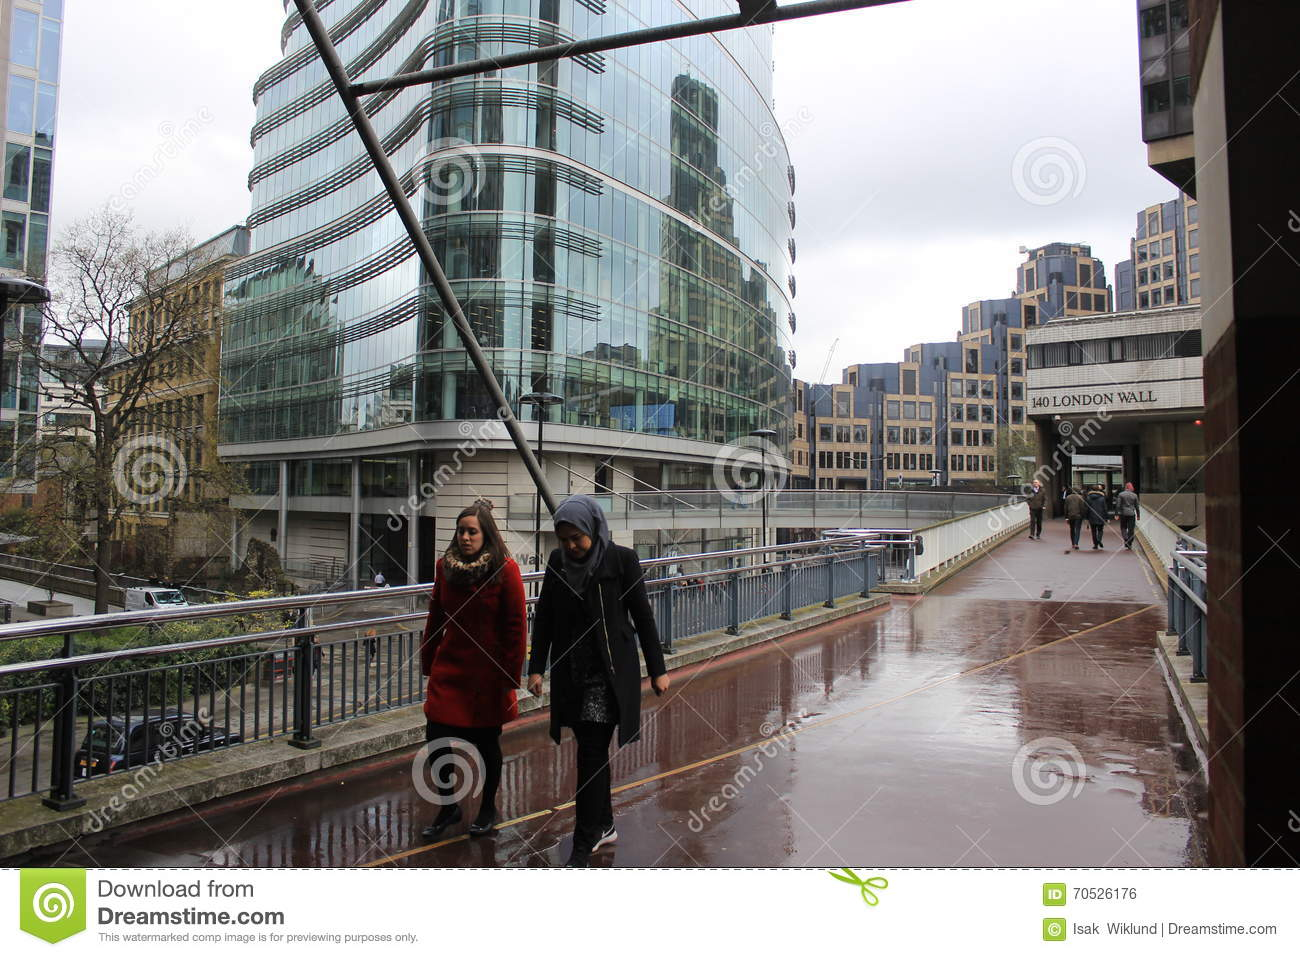 Modern Architecture London England people walking at london wall, england, urban street scene with